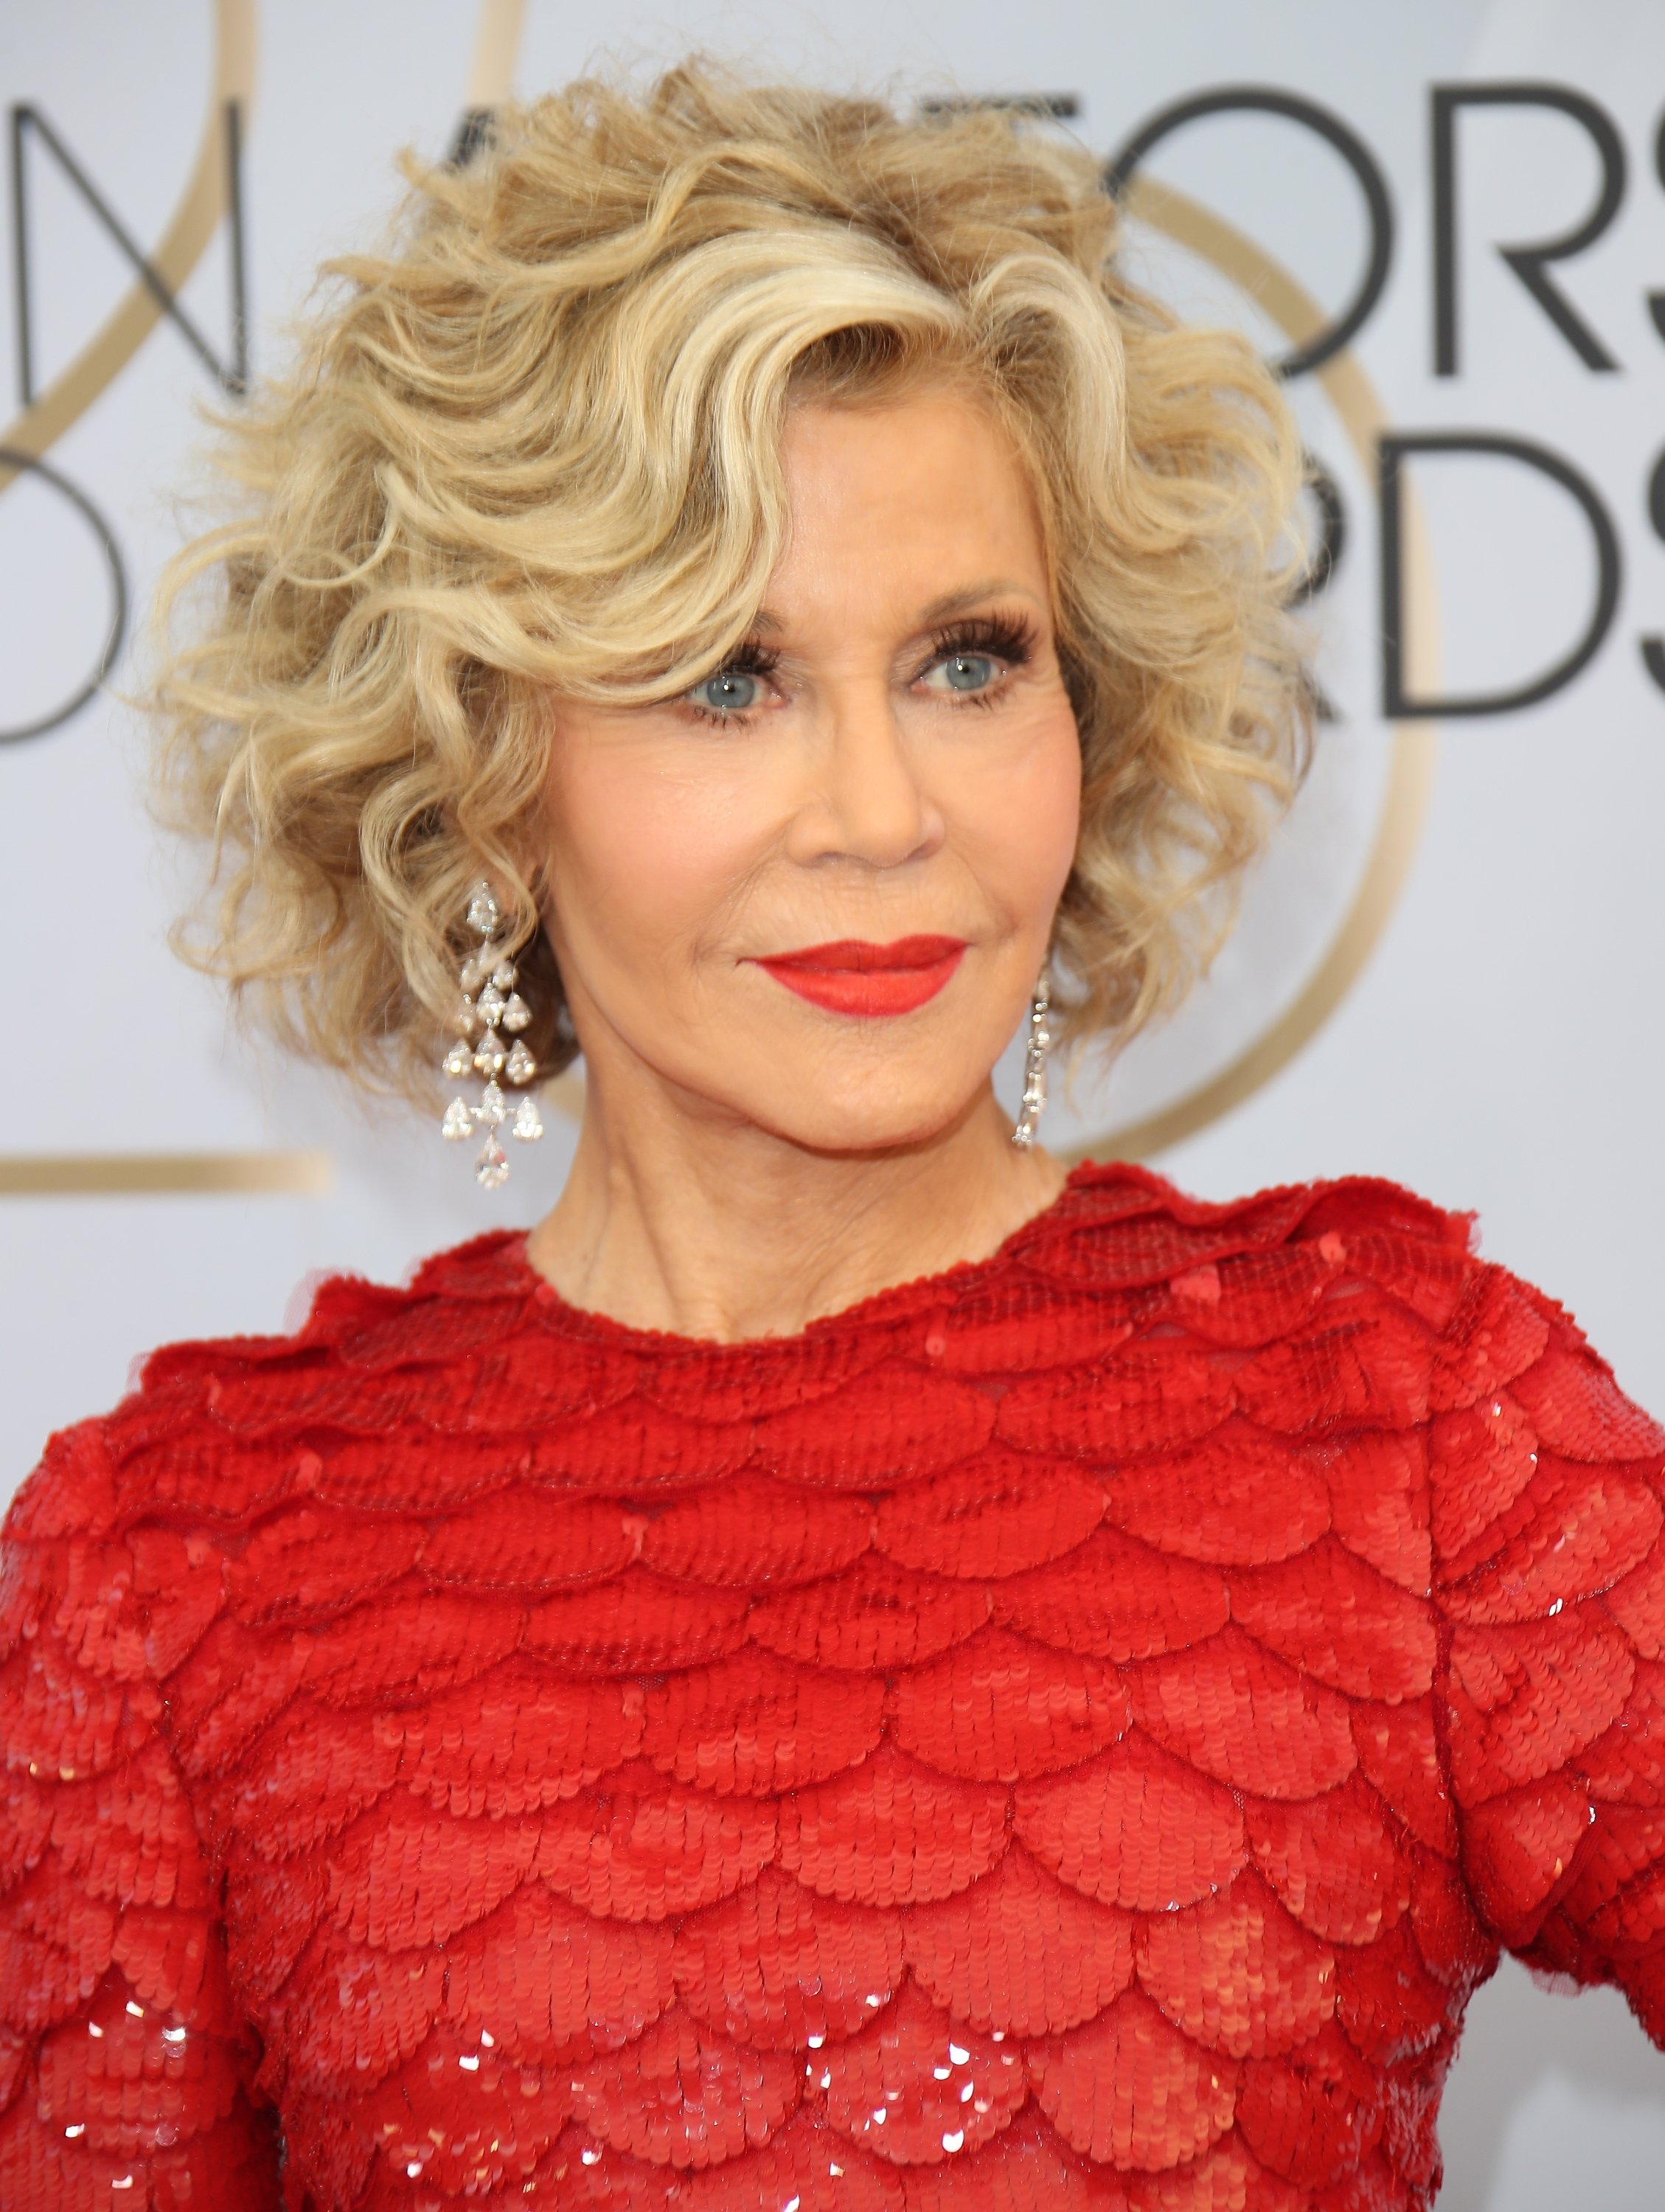 Jane Fonda attends the 25th Annual Screen Actors Guild Awards at The Shrine Auditorium on January 27, 2019 | Photo: GettyImages